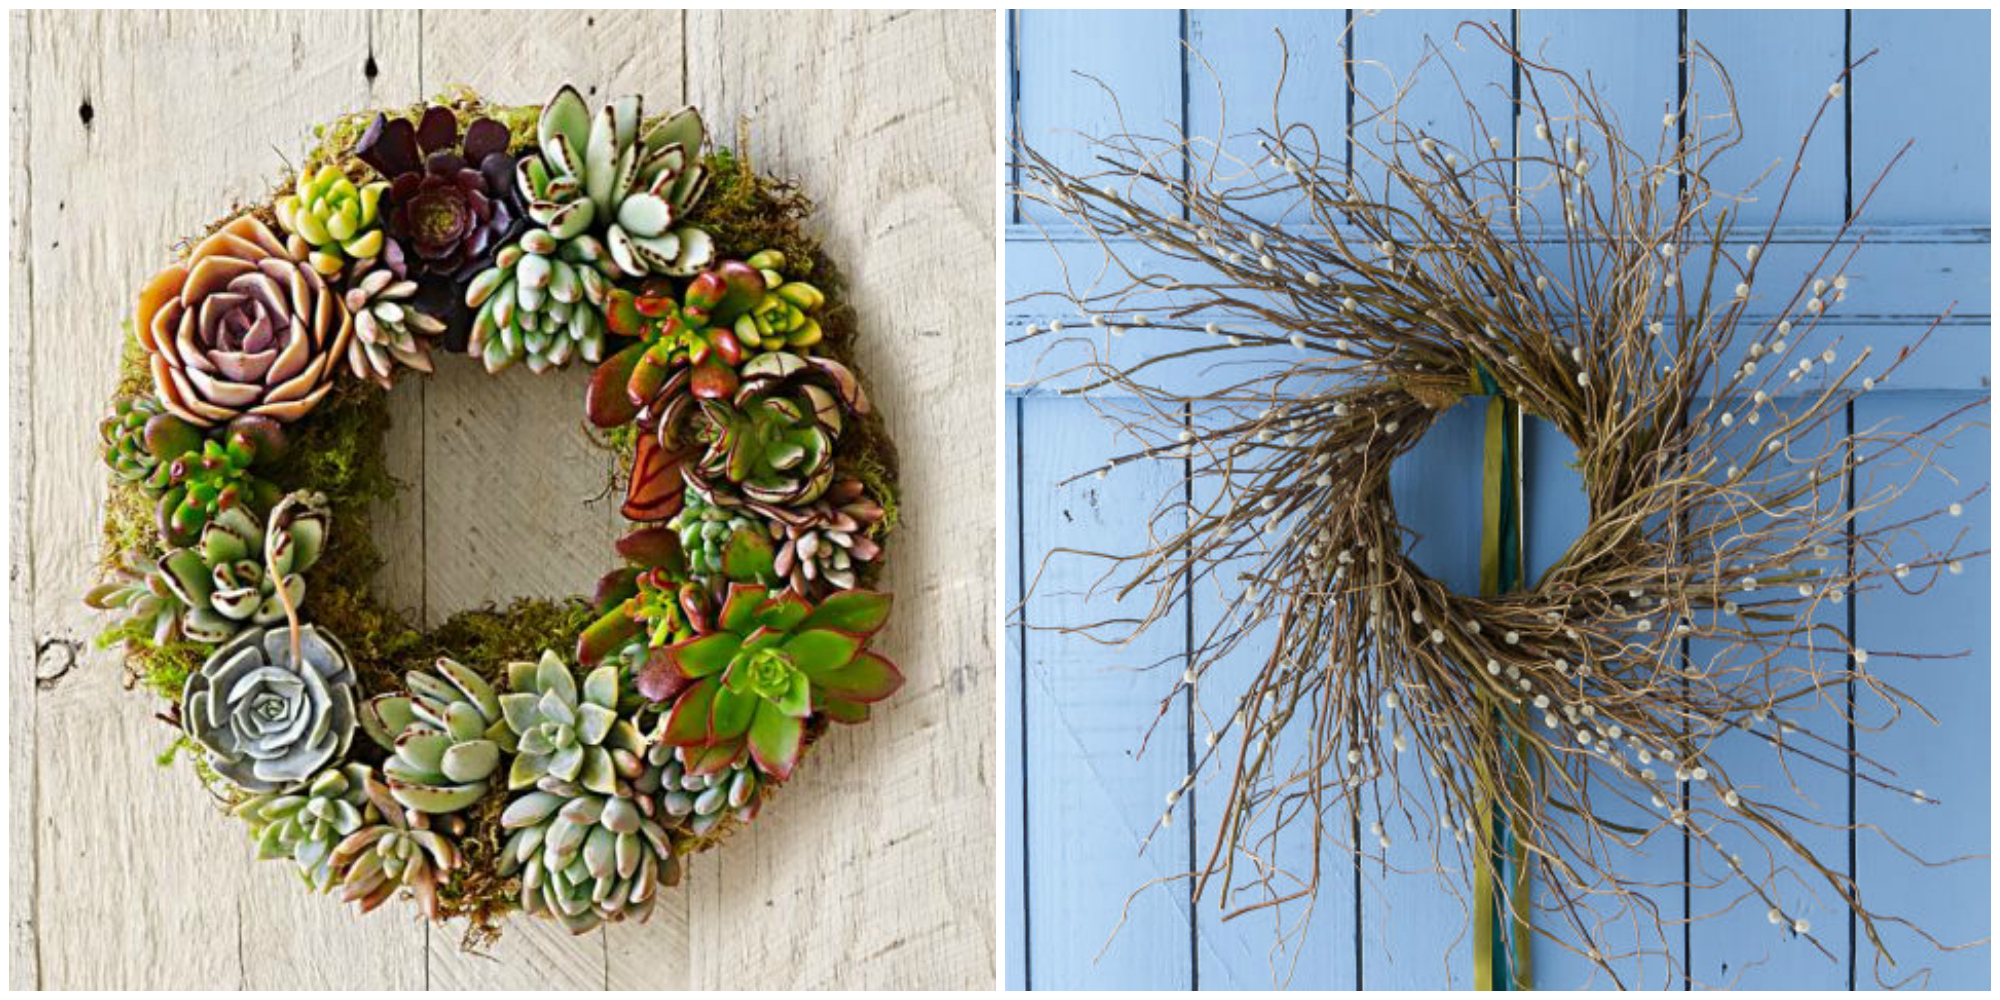 trend-decoration-holiday-wreath-ideas-christmas-for-fresh-and-spring-wreaths-easter-door-decorations-photos-business-card-design-cake_home-christmas-decorations_interior-home-decor